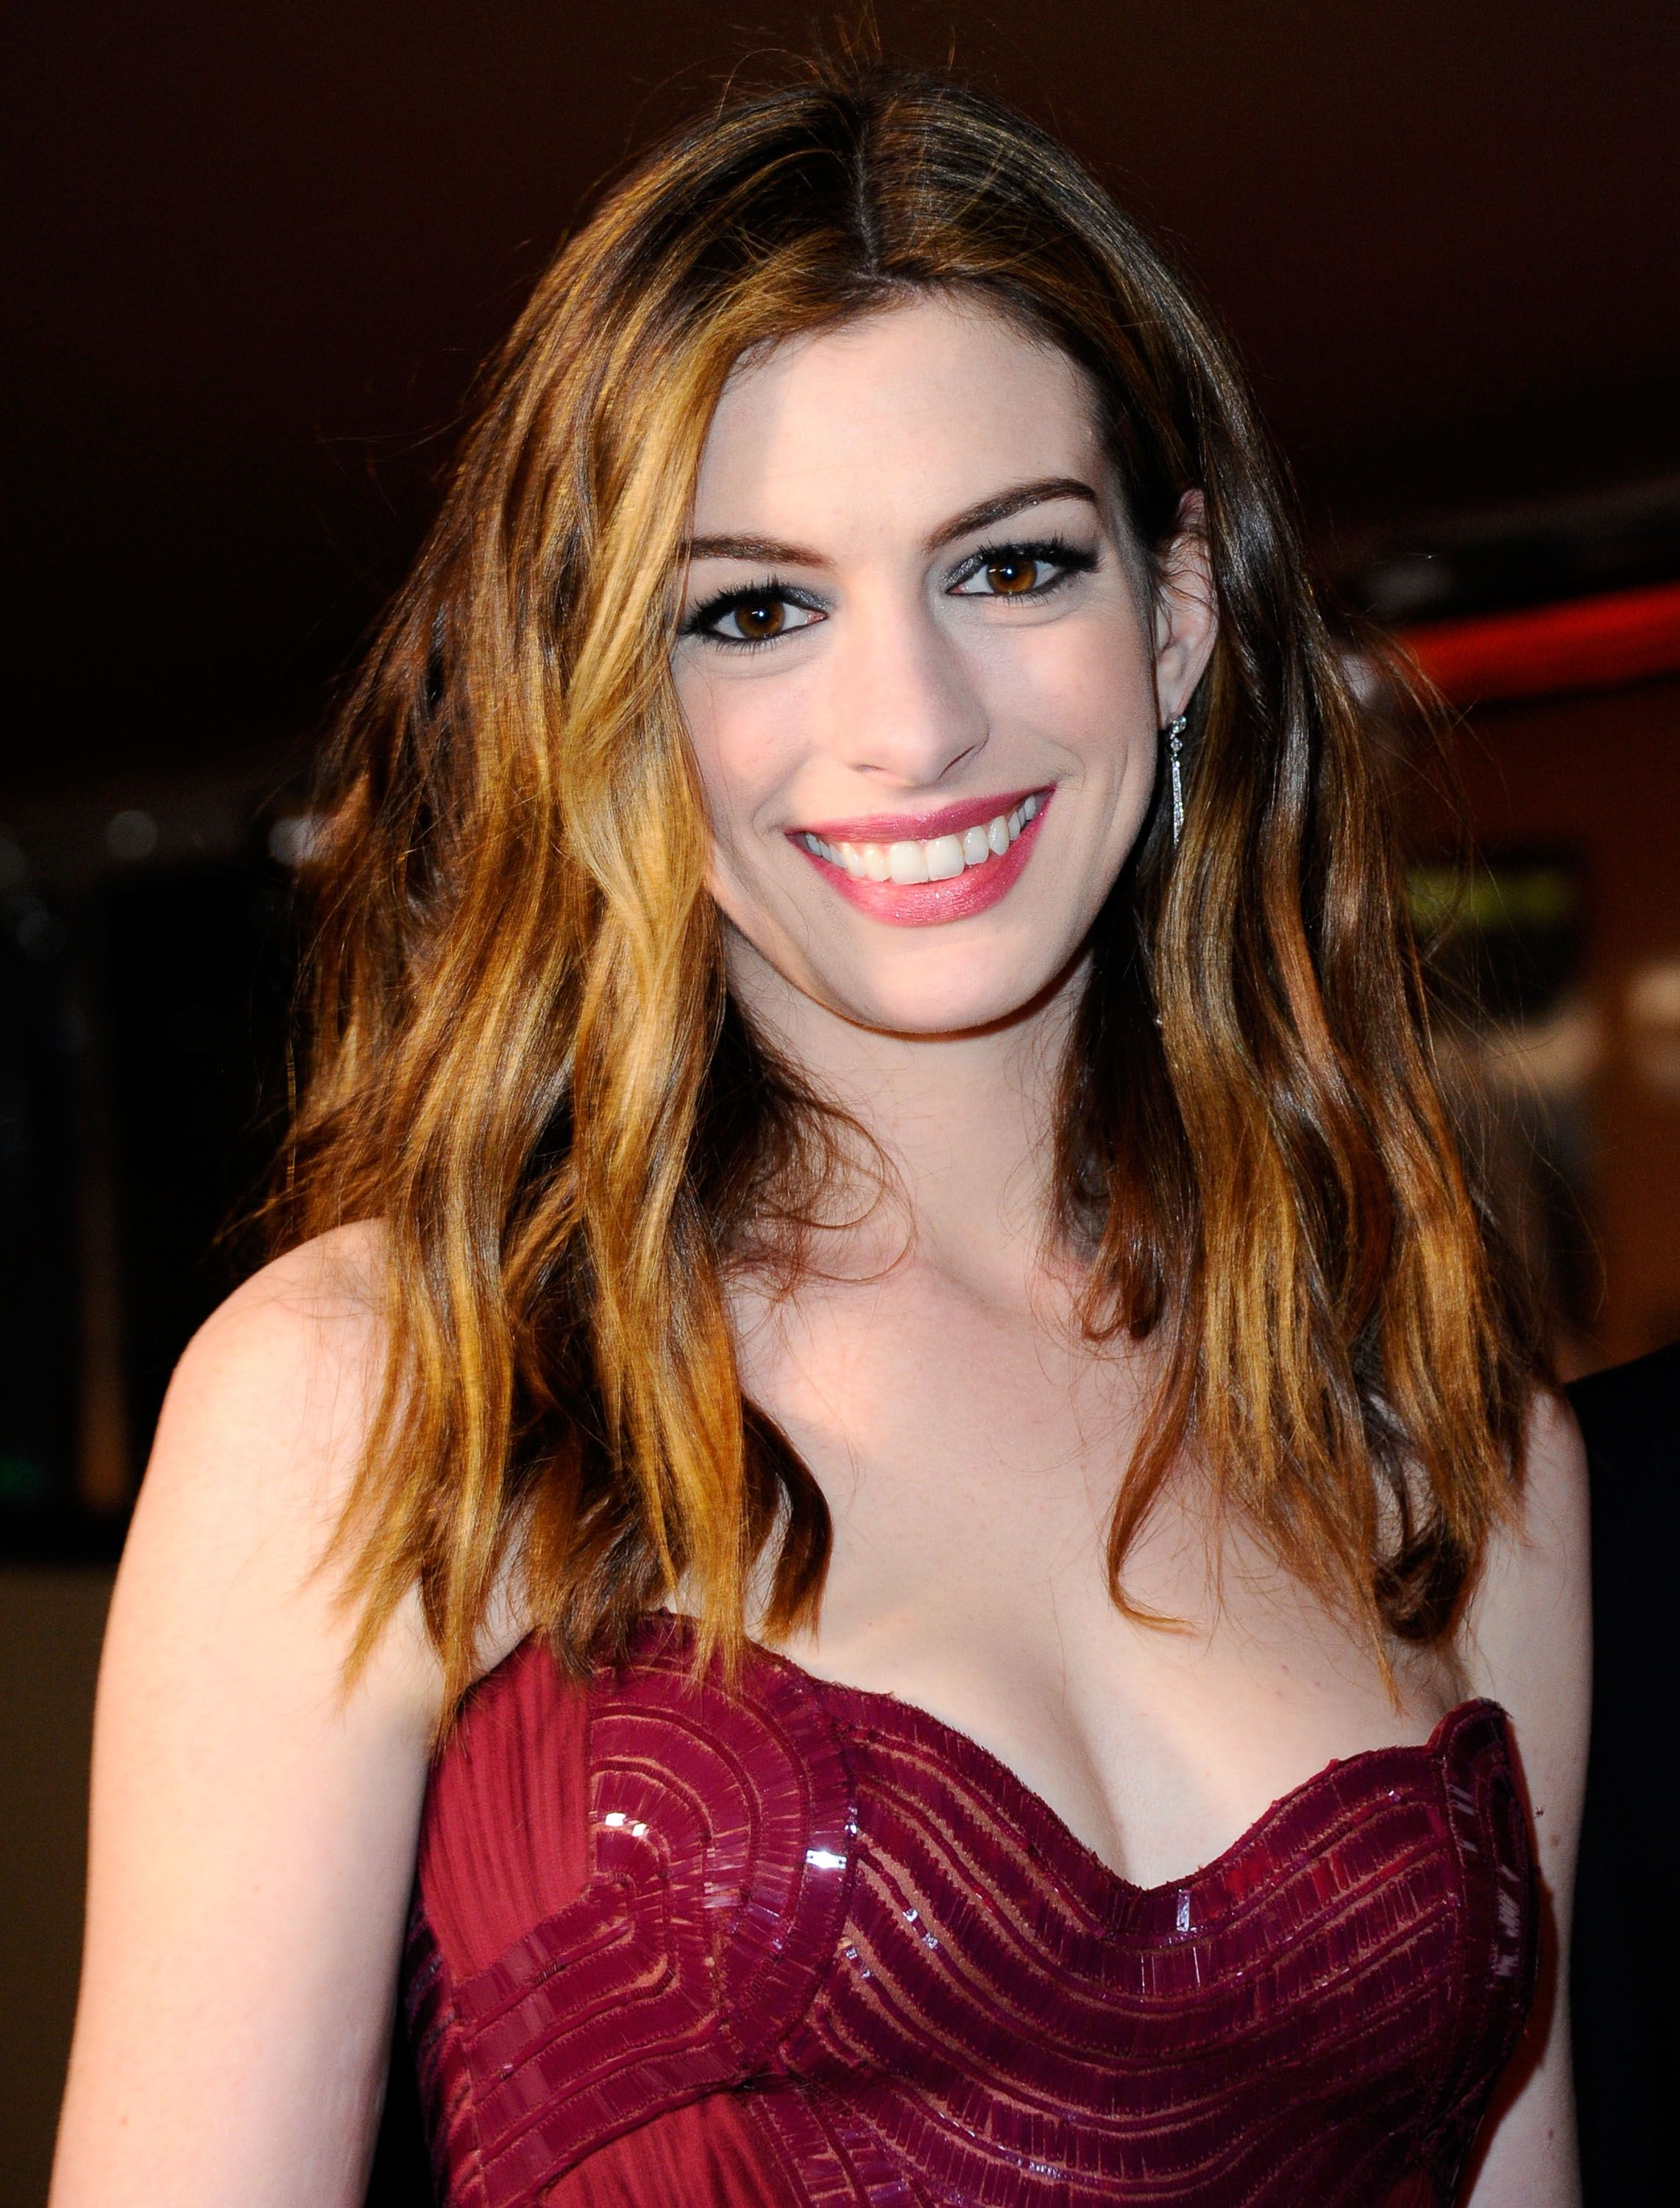 Cleavage Anne Hathaway nudes (87 photo), Ass, Bikini, Twitter, see through 2020